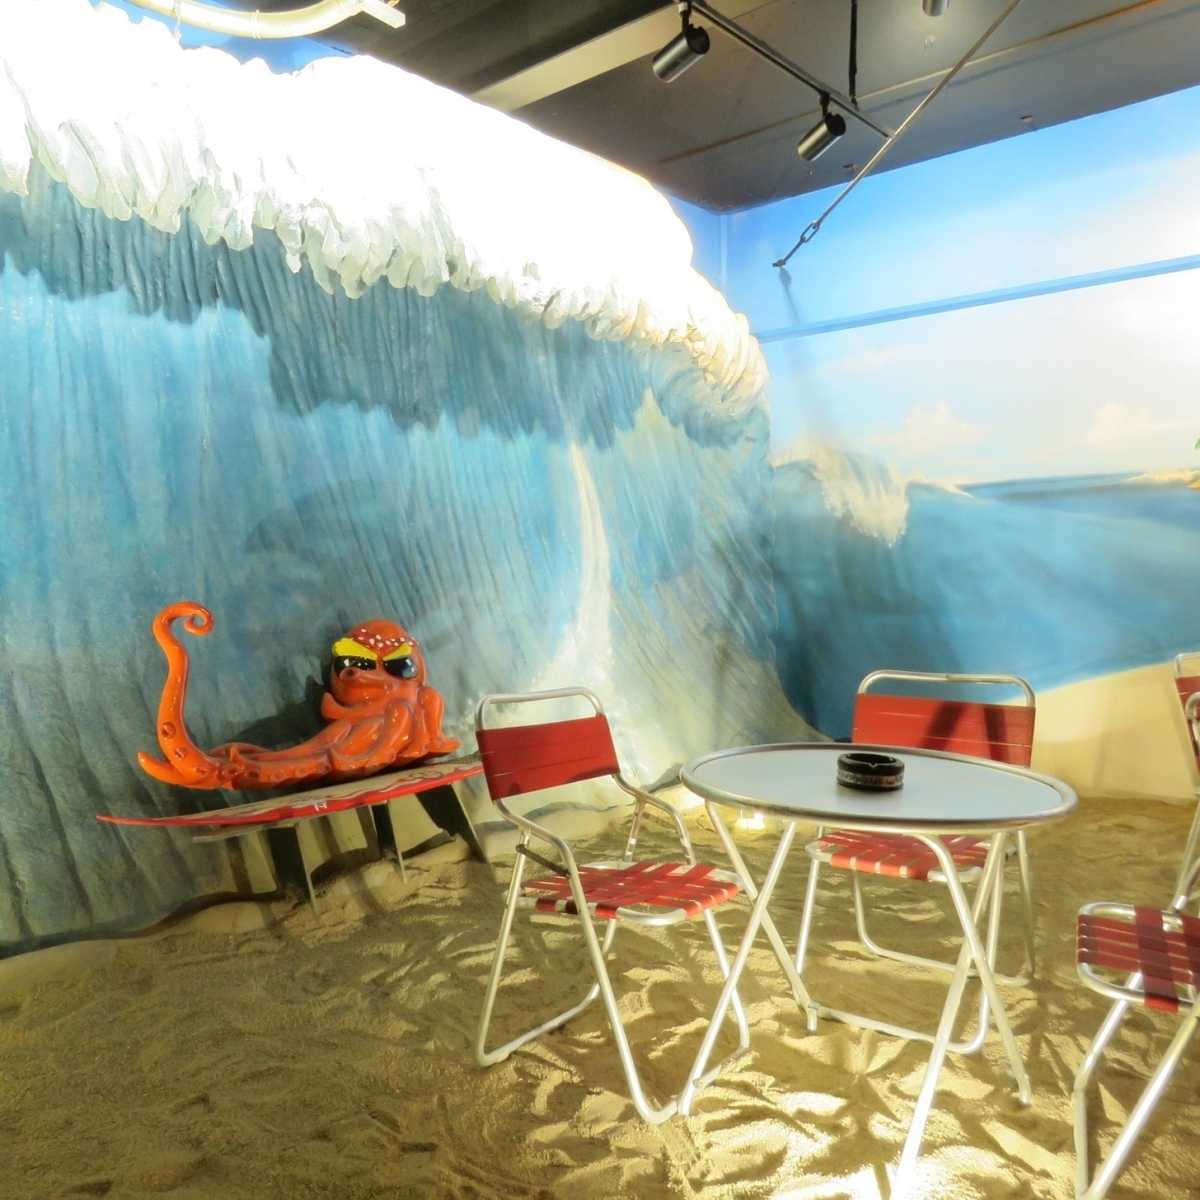 Inside the store where charter facilities are substantial, use of projector and microphone is also free of charge OK [Okayama / Takoyaki / Reef / REEF / Banquet / Chamber]